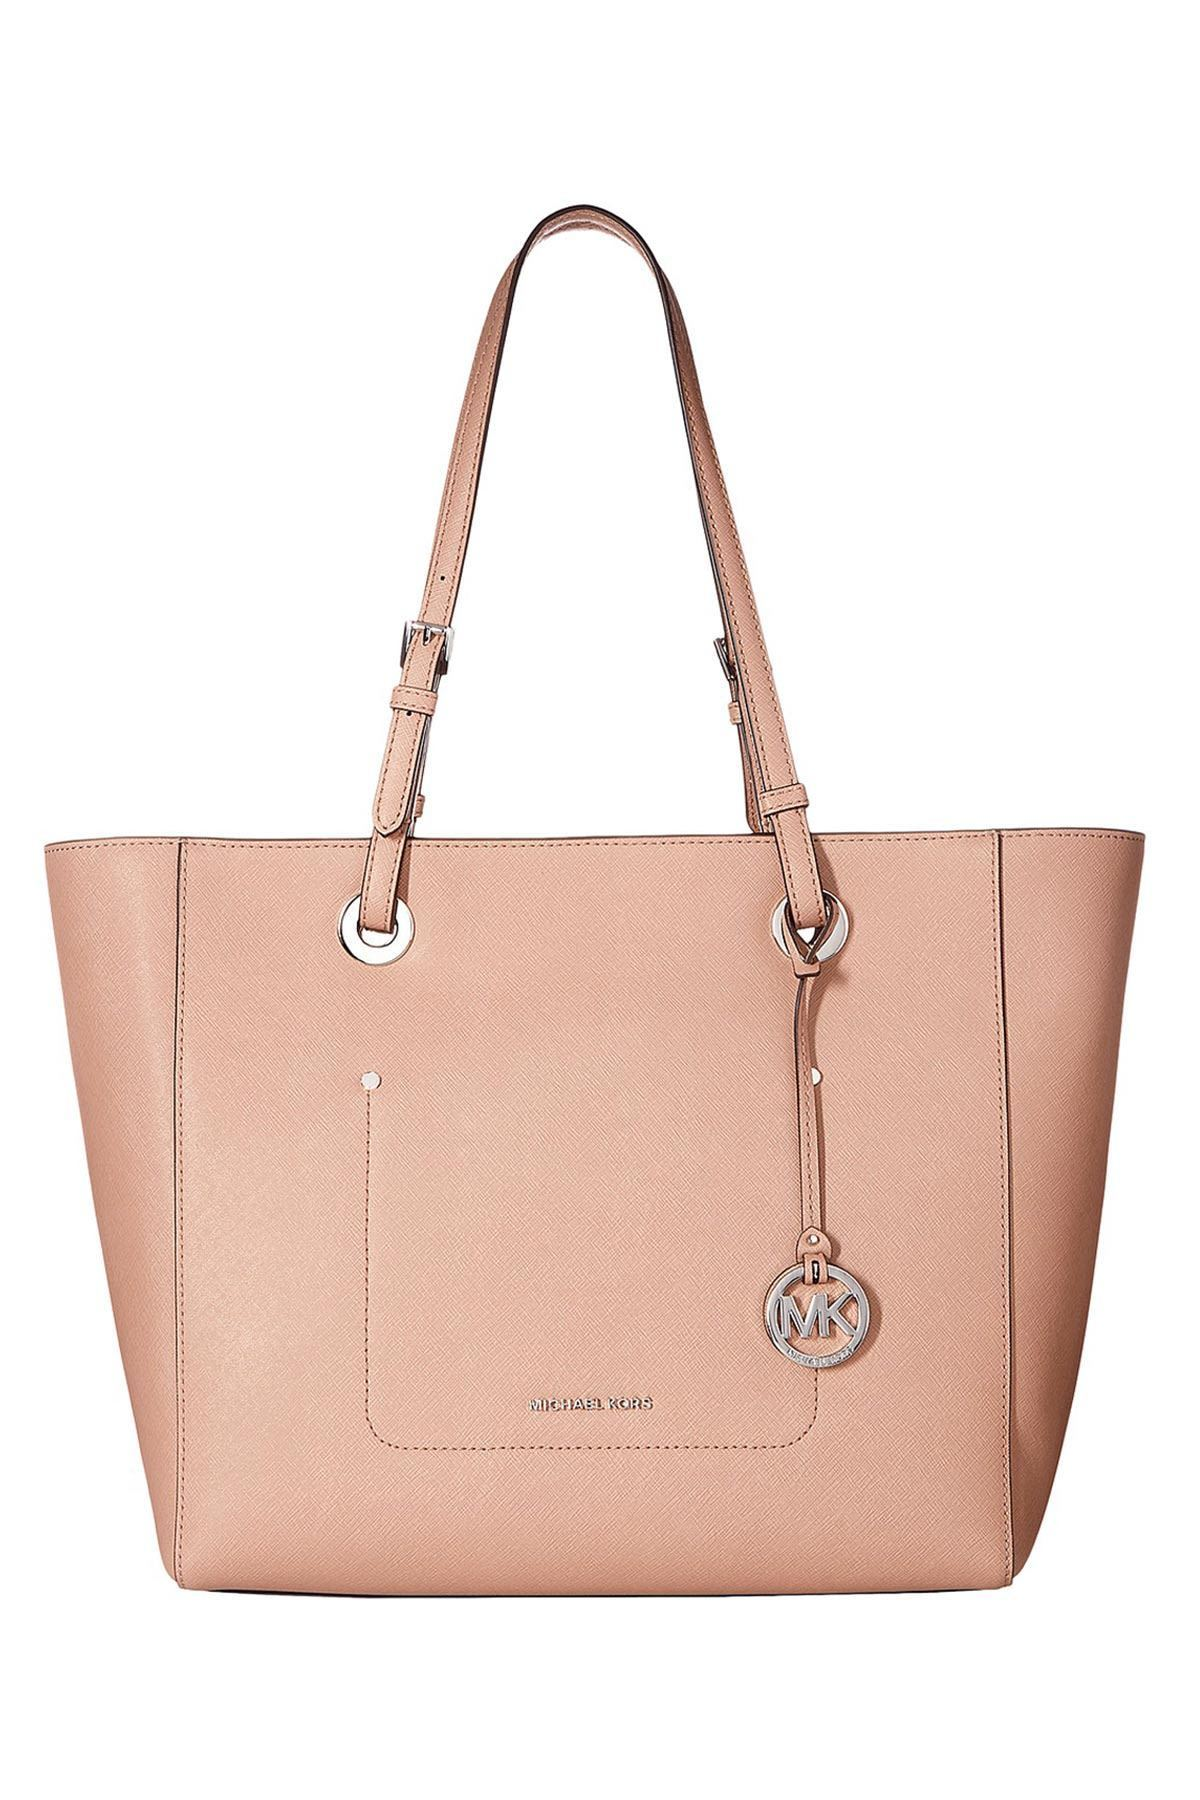 送料込 Michael Kors Fawn Walsh Shopping Bag バッグ